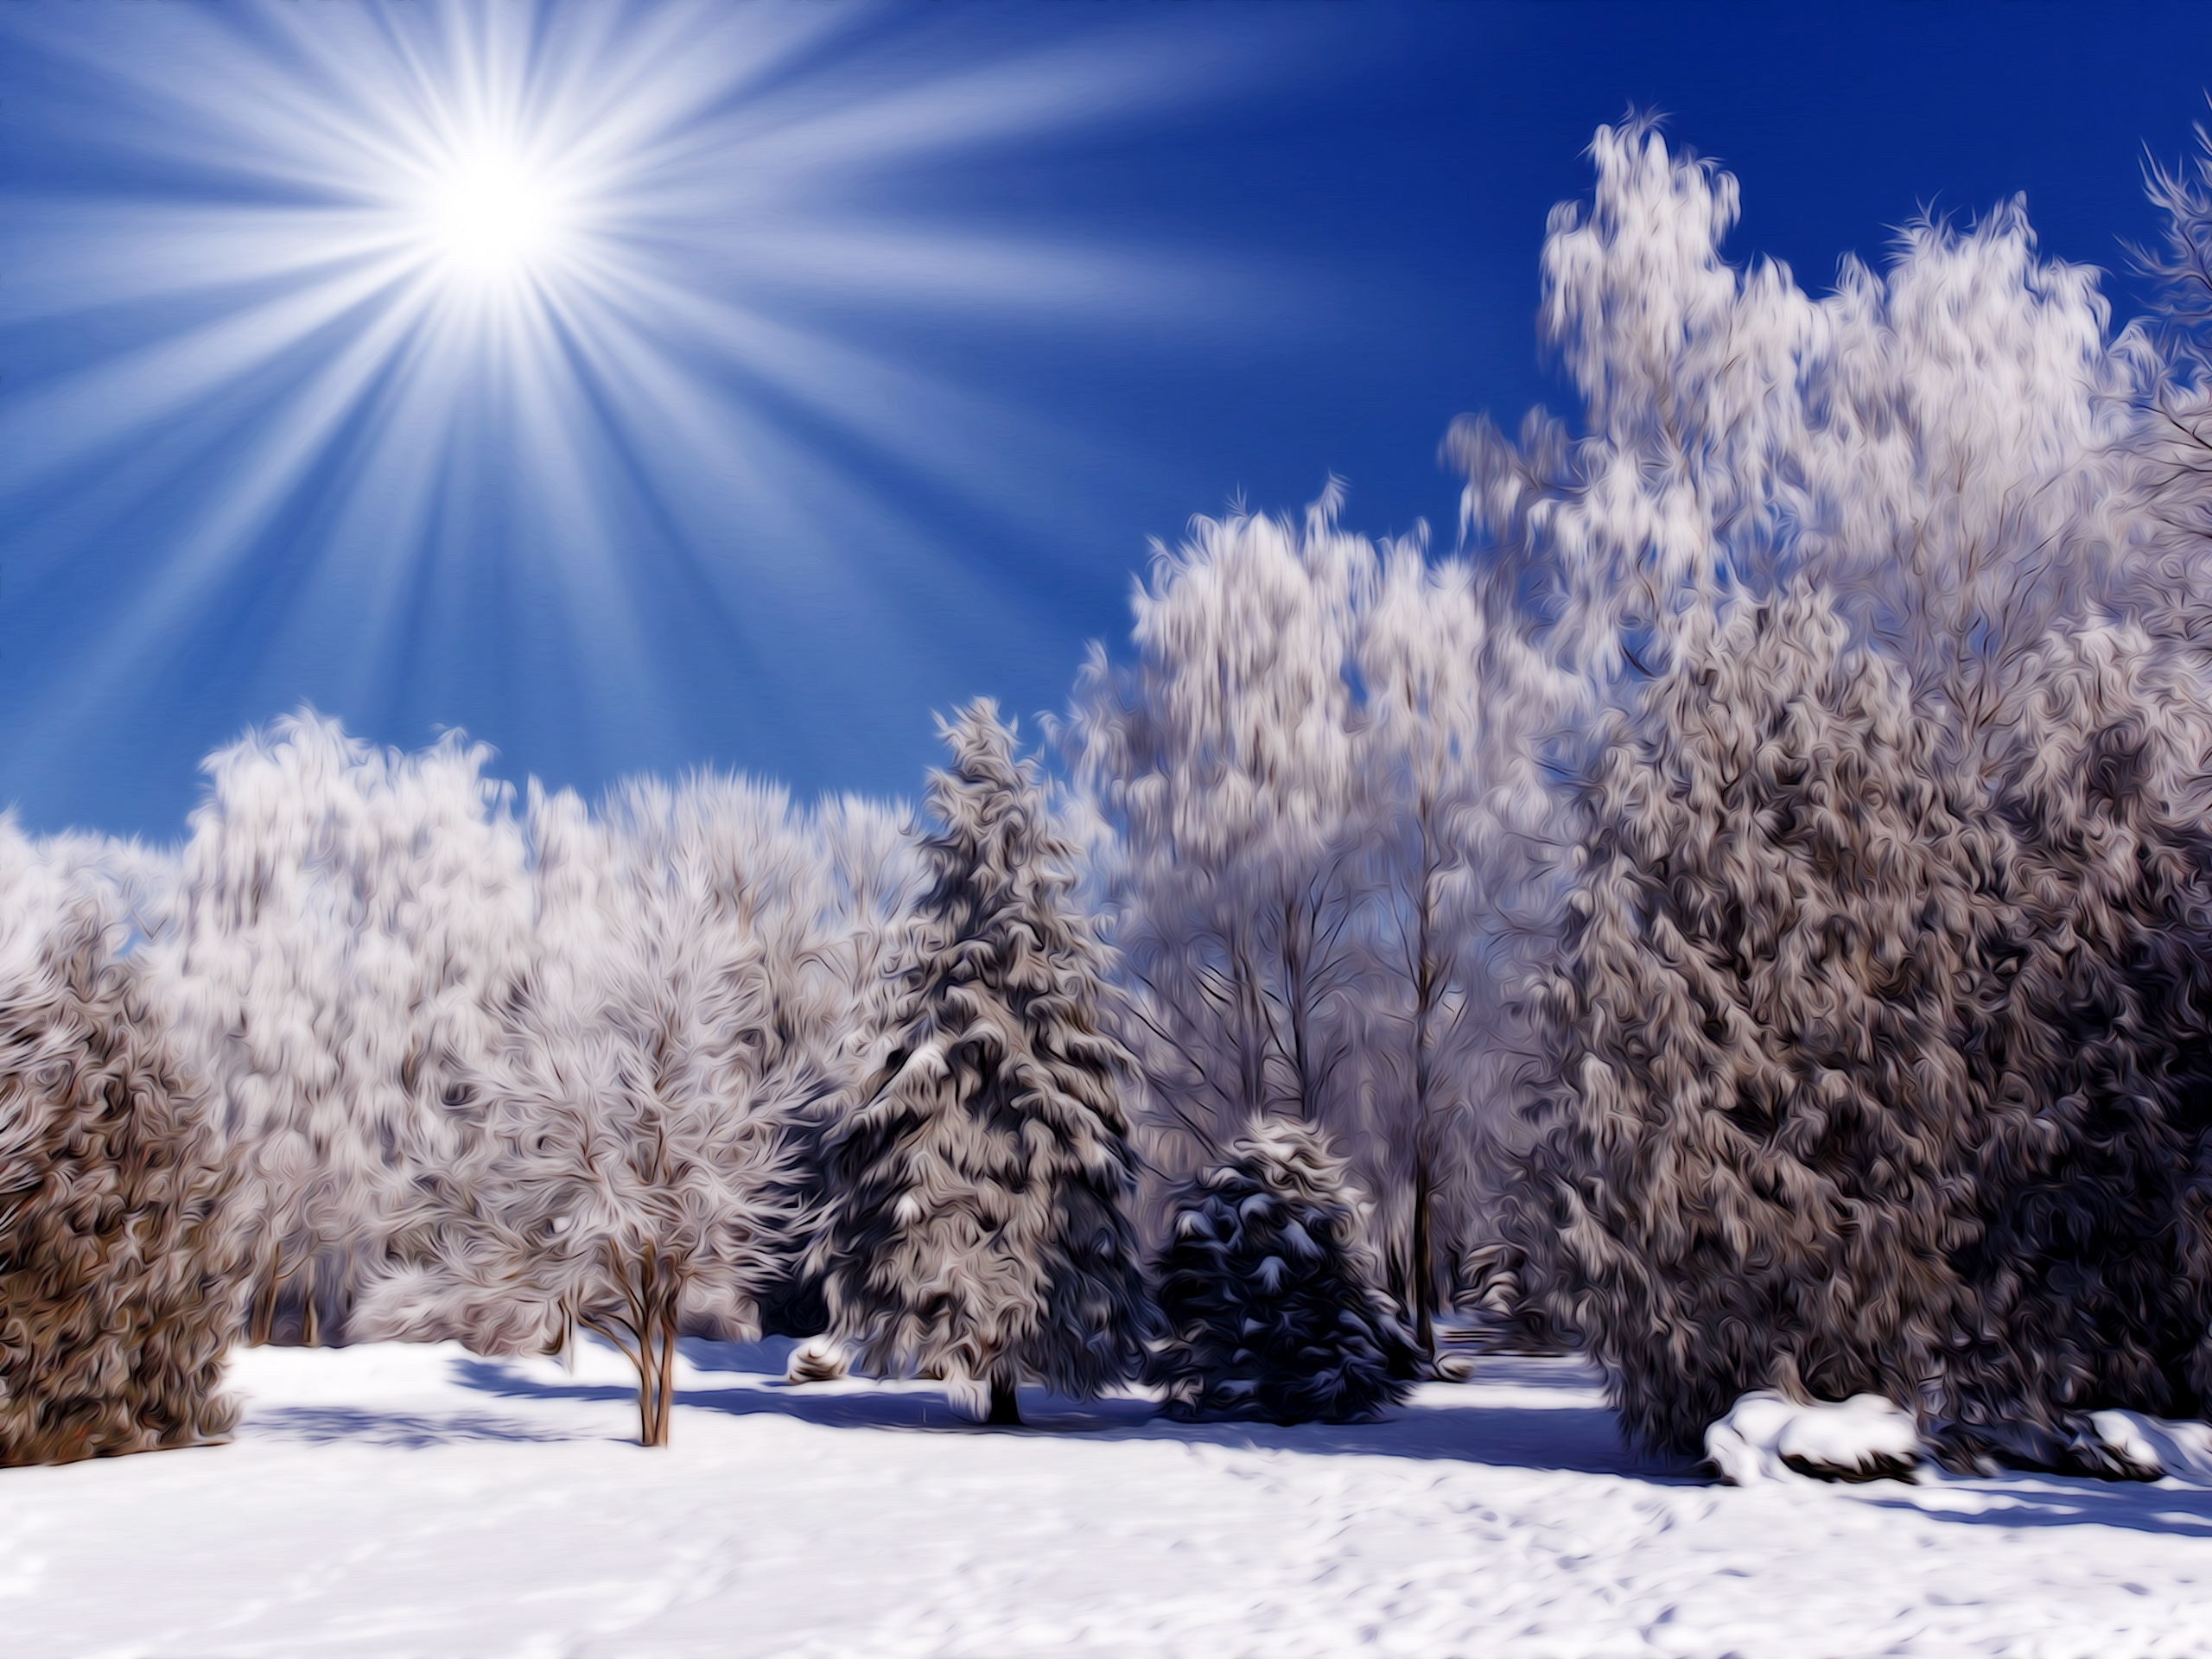 winter nature snow scene | free desktop wallpapers for widescreen